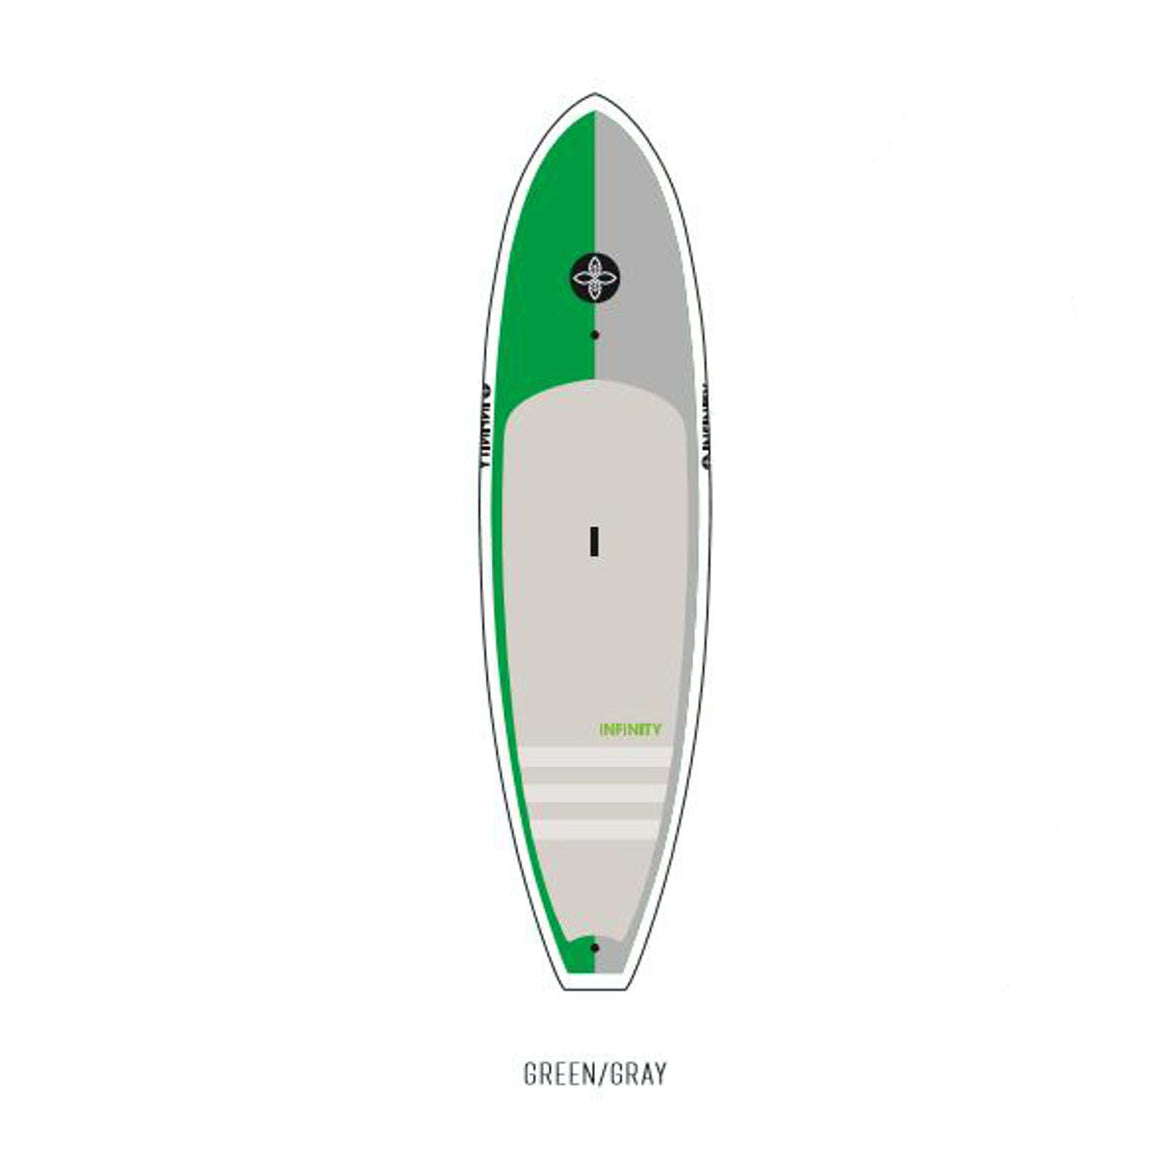 Infinity - 10'4 All Arround Wide Aquatic - Green